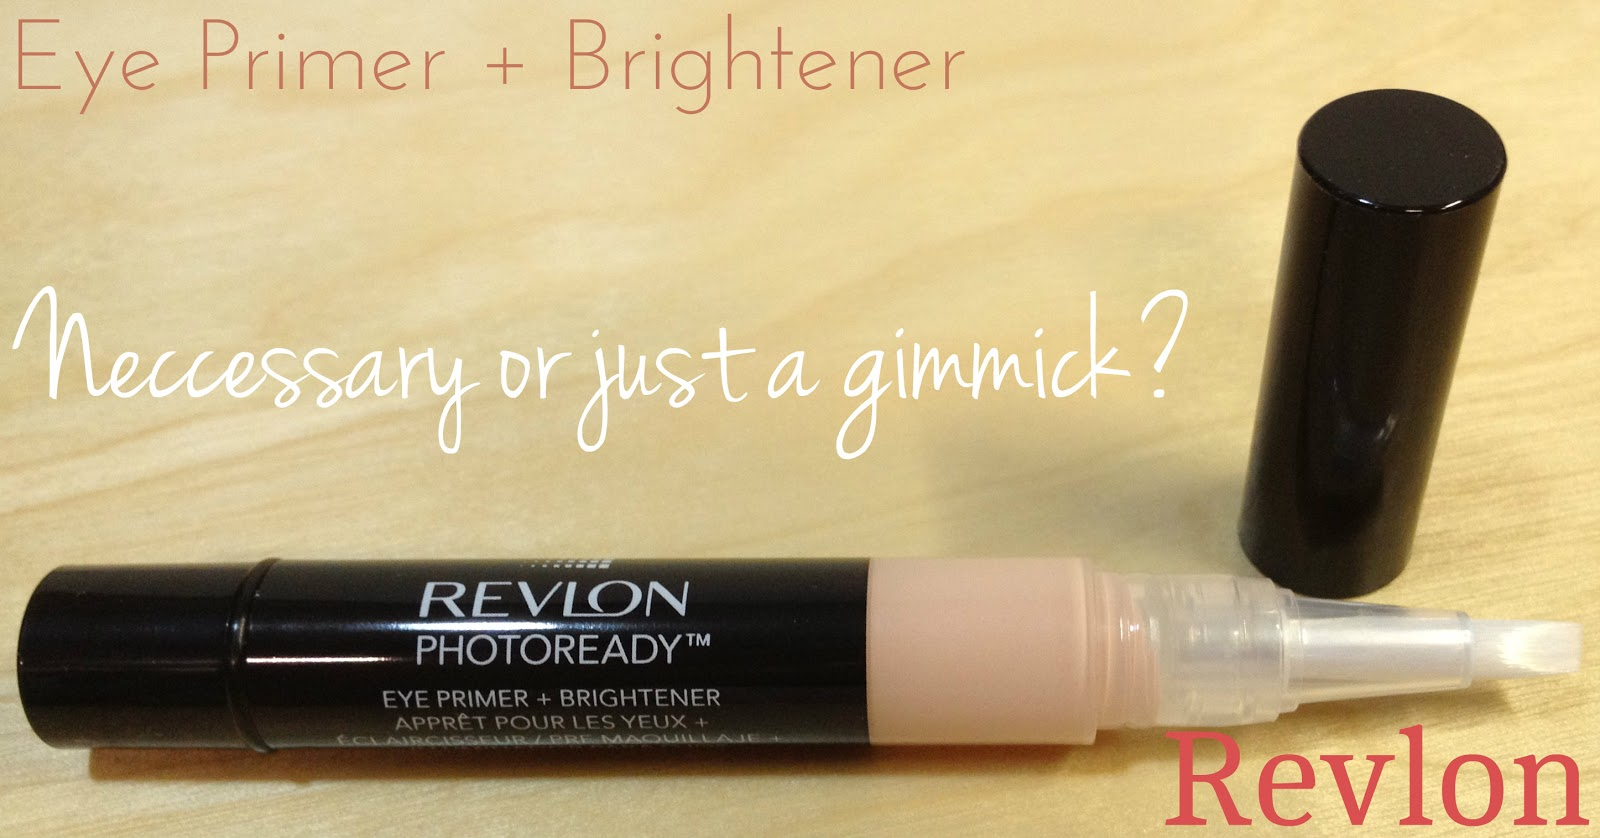 Photoready Eye Primer + Brightener by Revlon #16